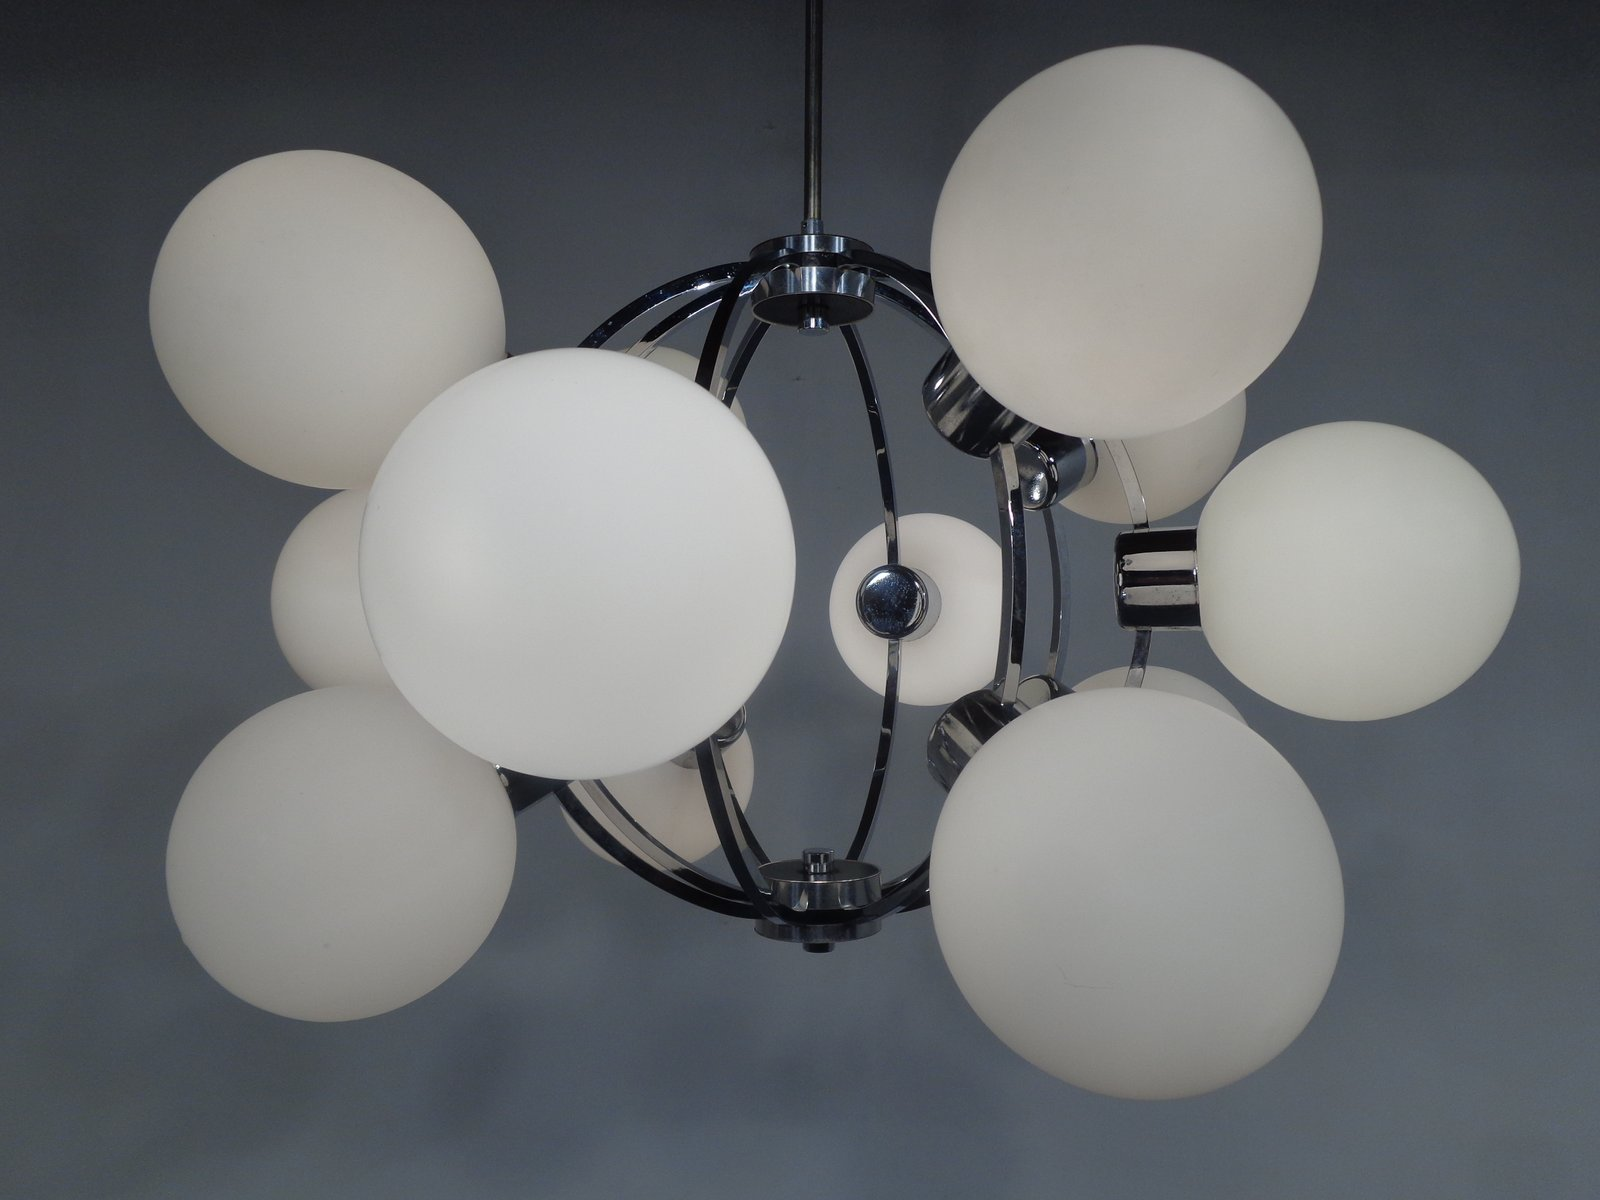 Space Age Sputnik Lamp With 12 Milk Glass Balls For Sale